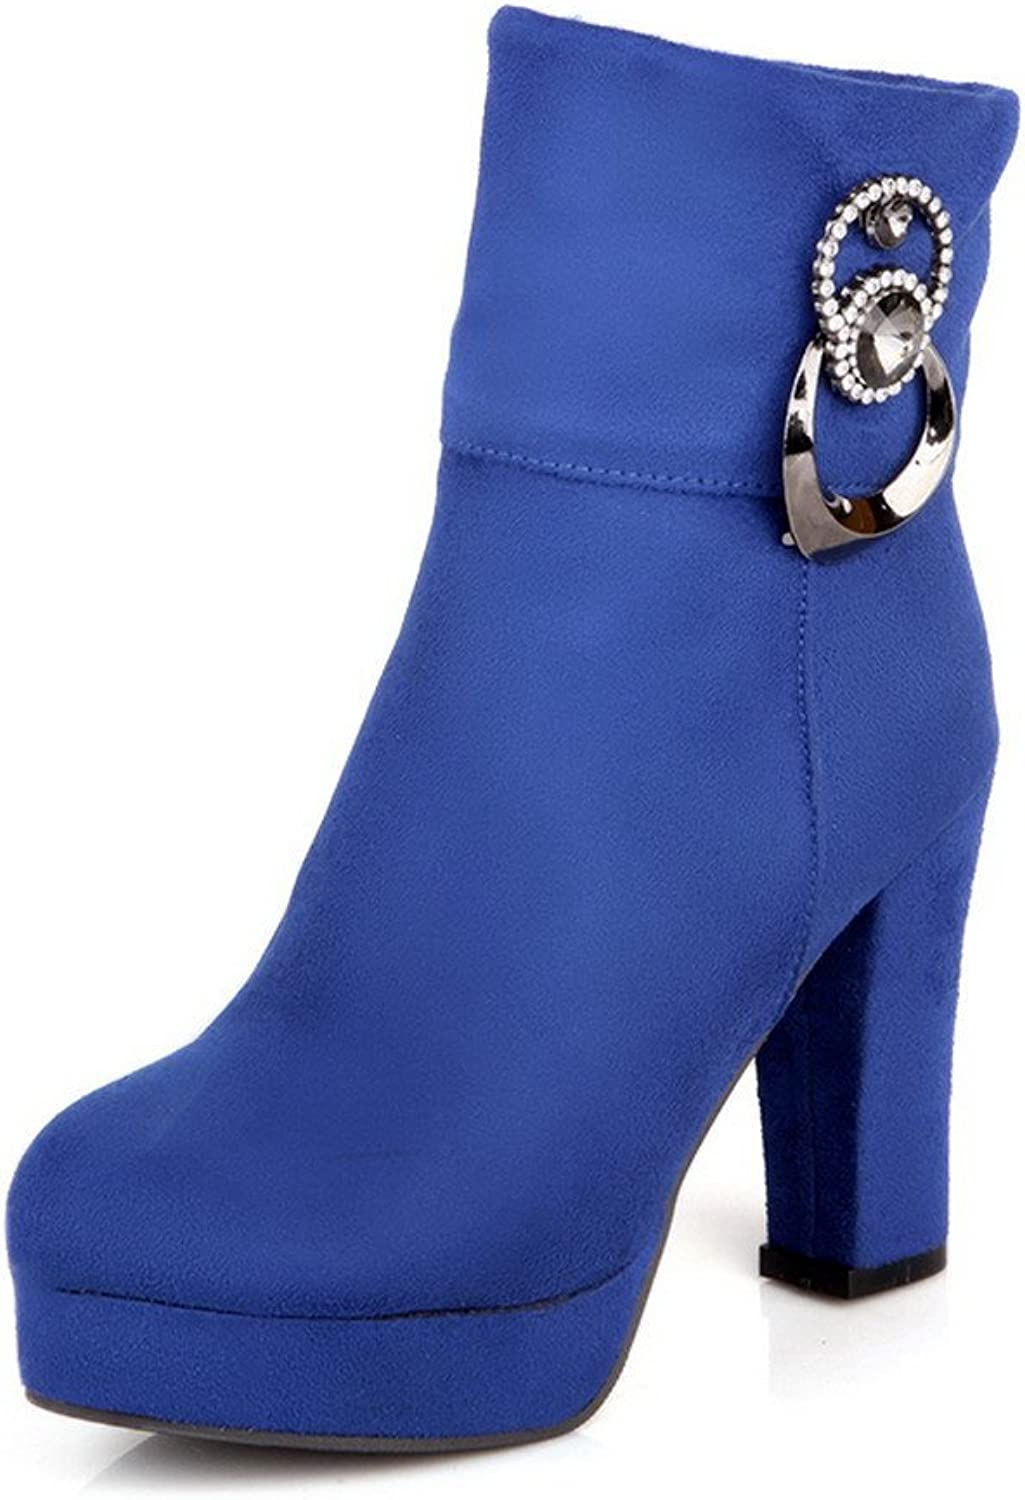 AllhqFashion Women's Solid Round-Toe Frosted PU Low-Top Boots